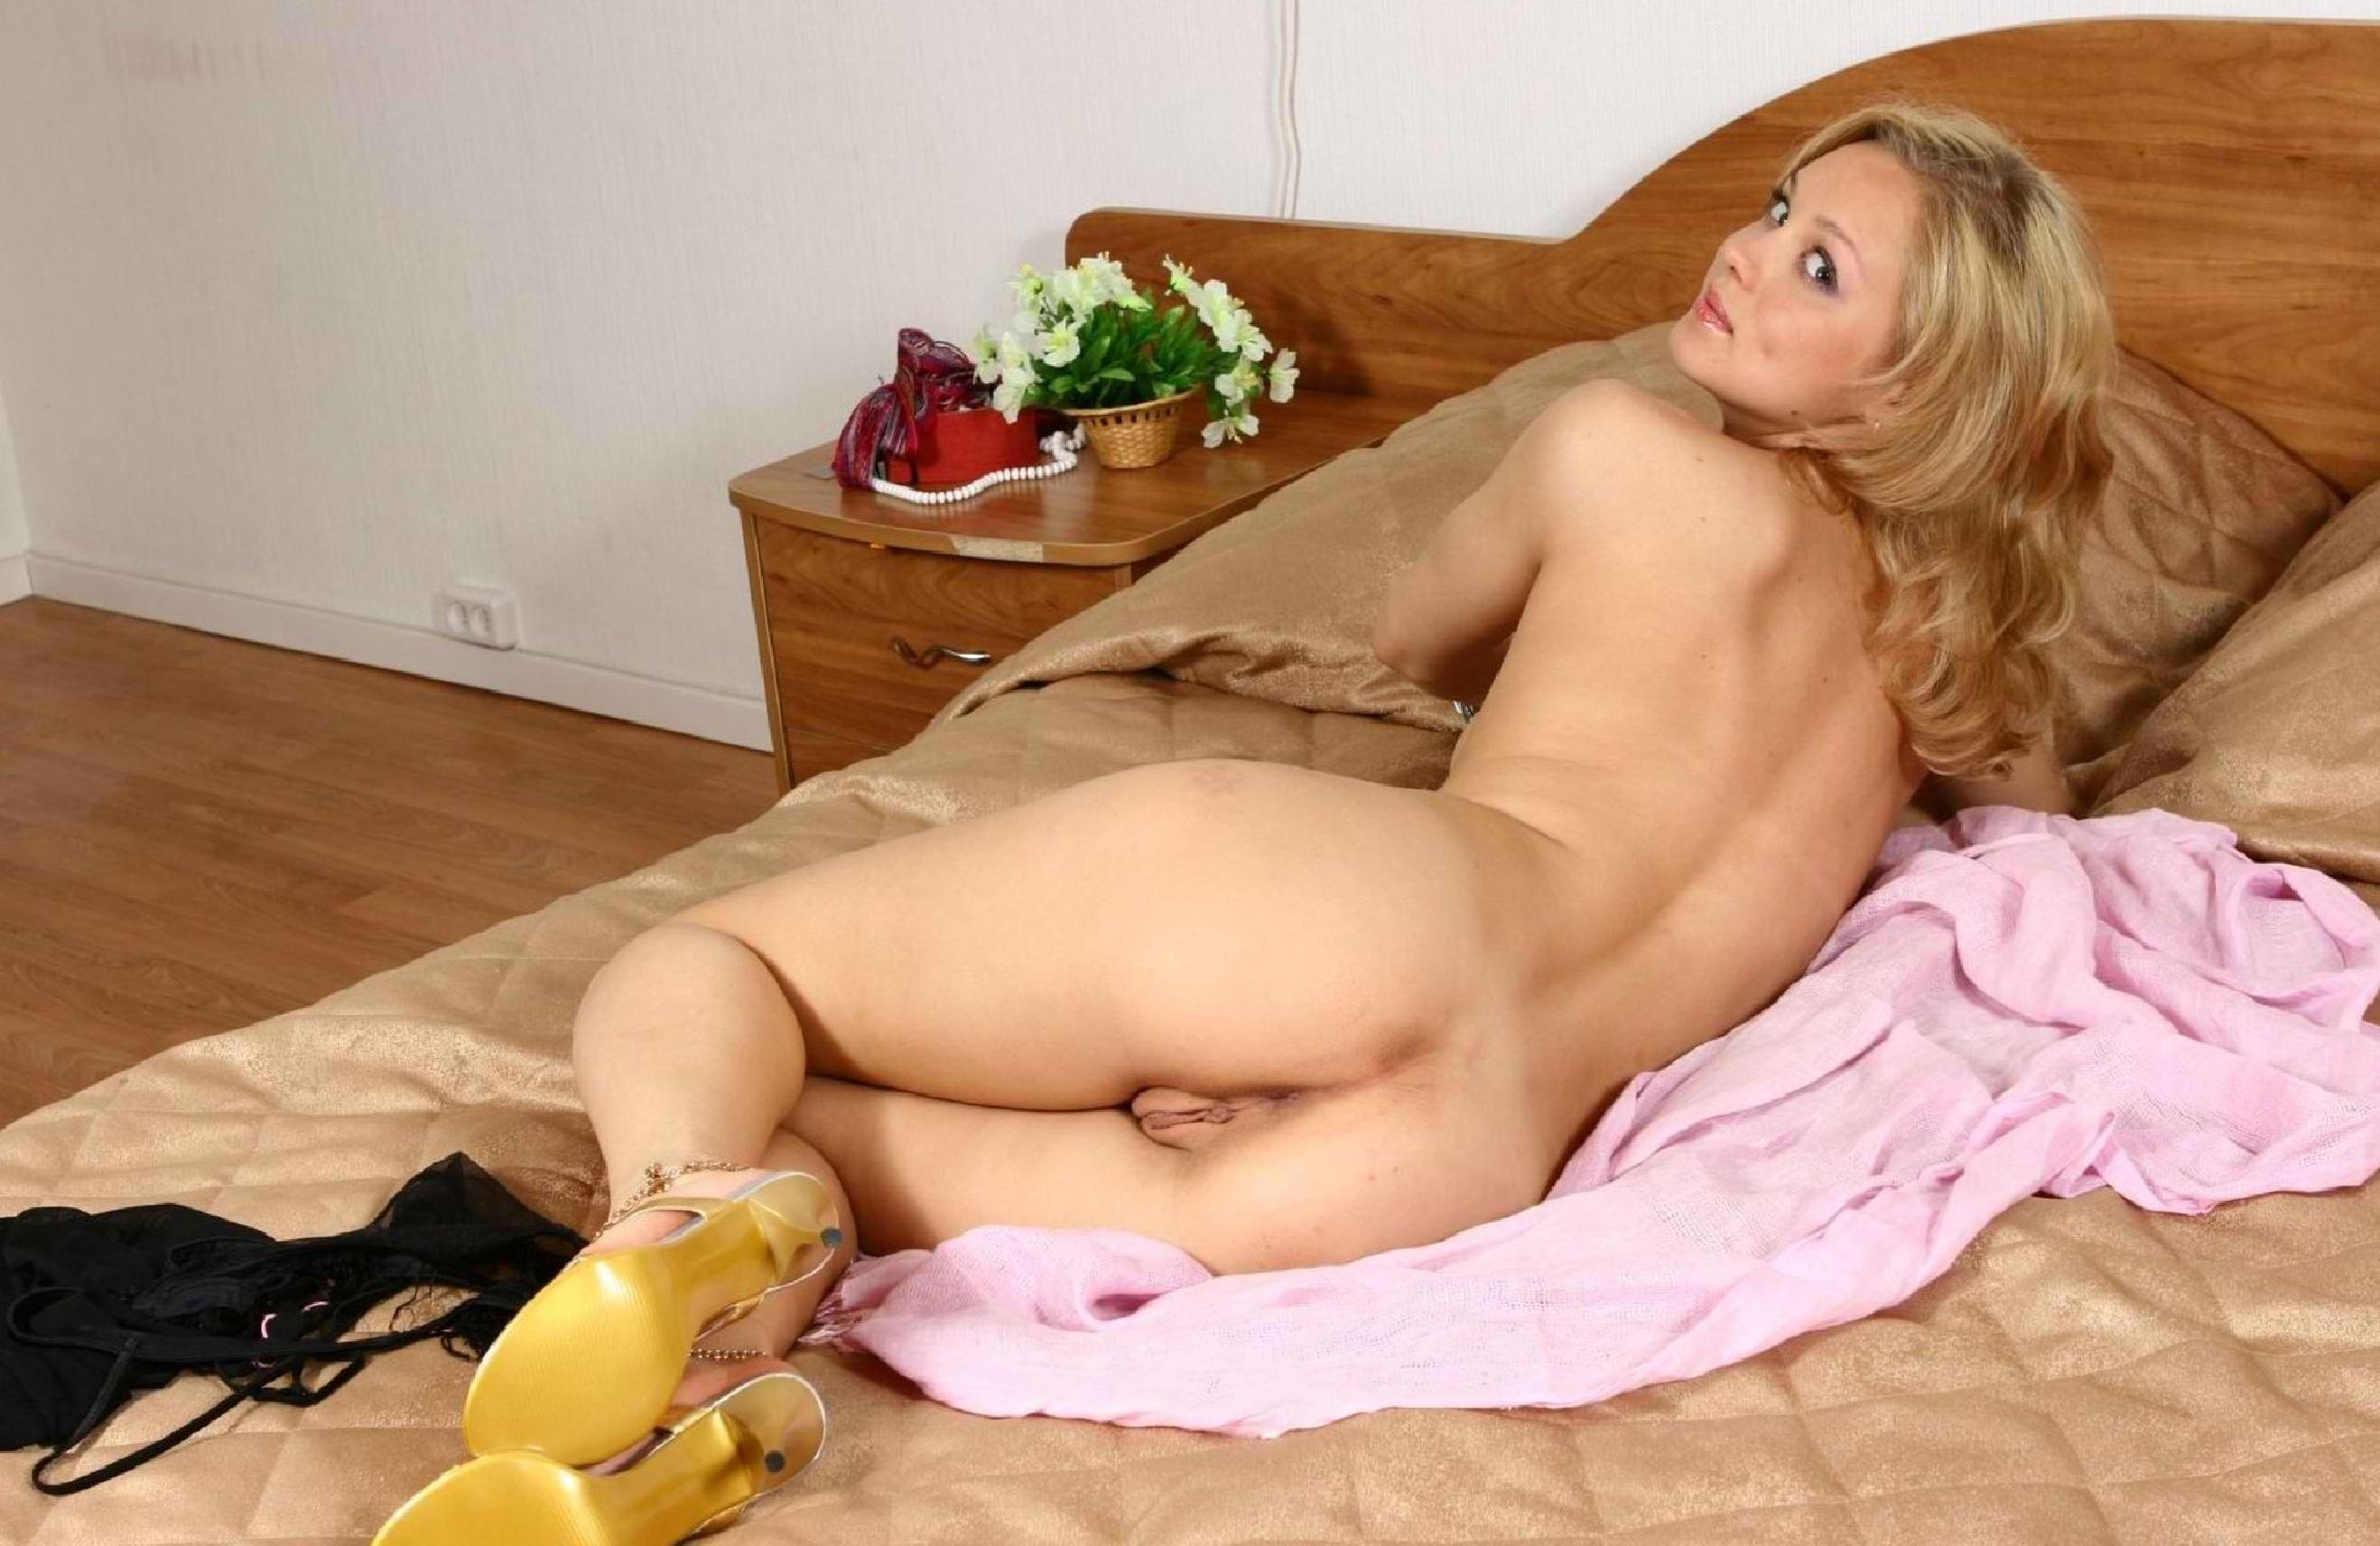 That would naked blonde girl posing on bed variant